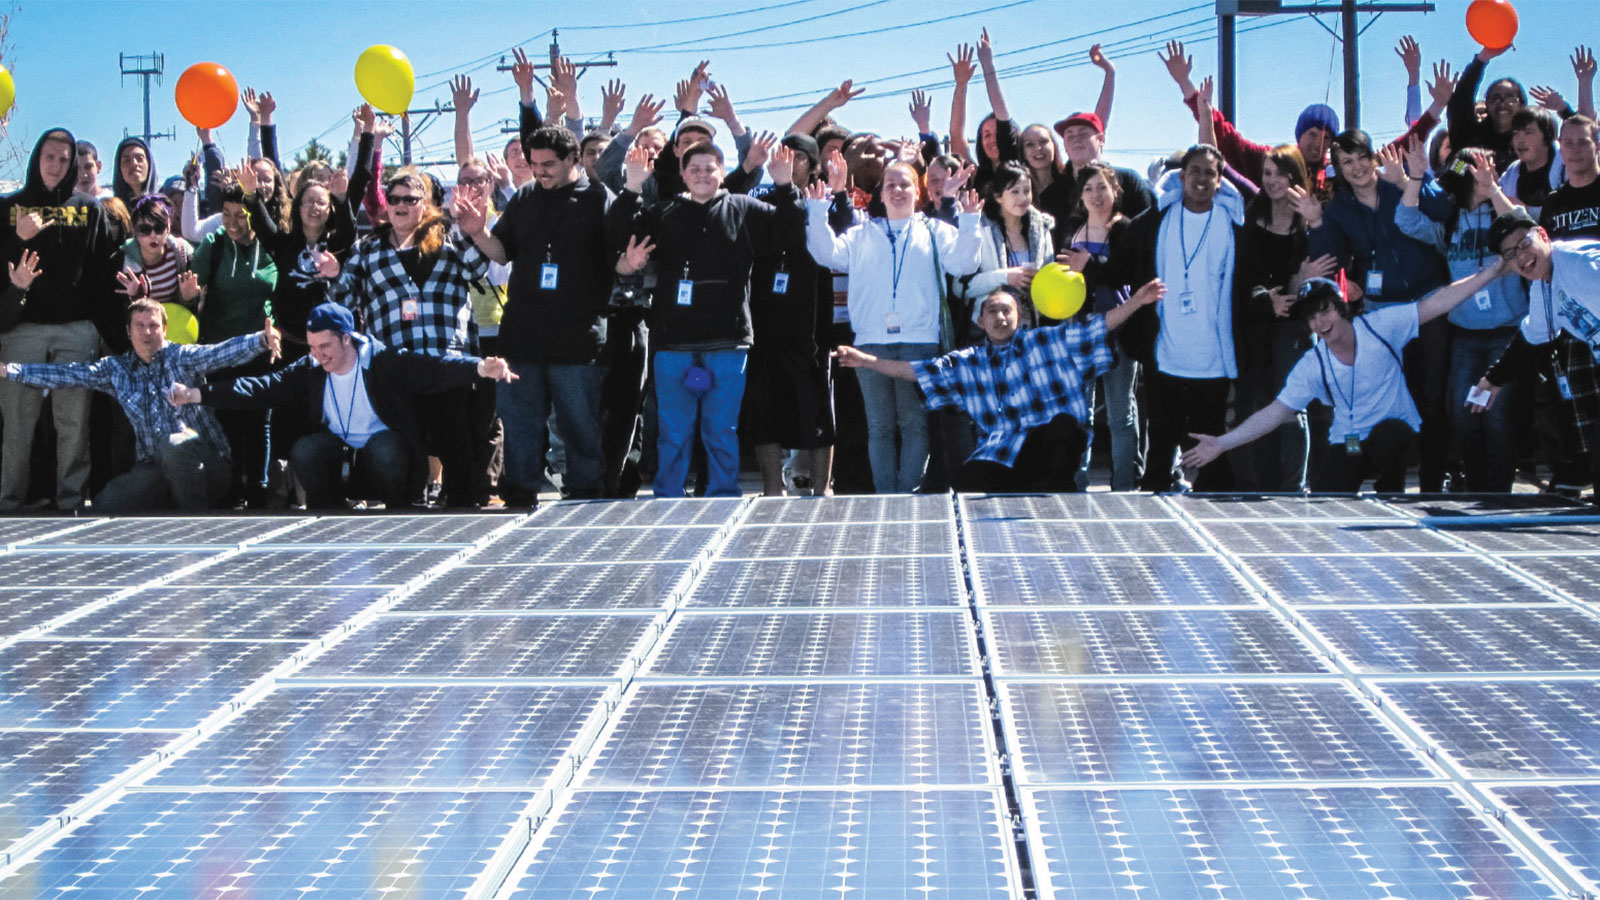 Ten Ways Your Community Can Go Solar | Environment America